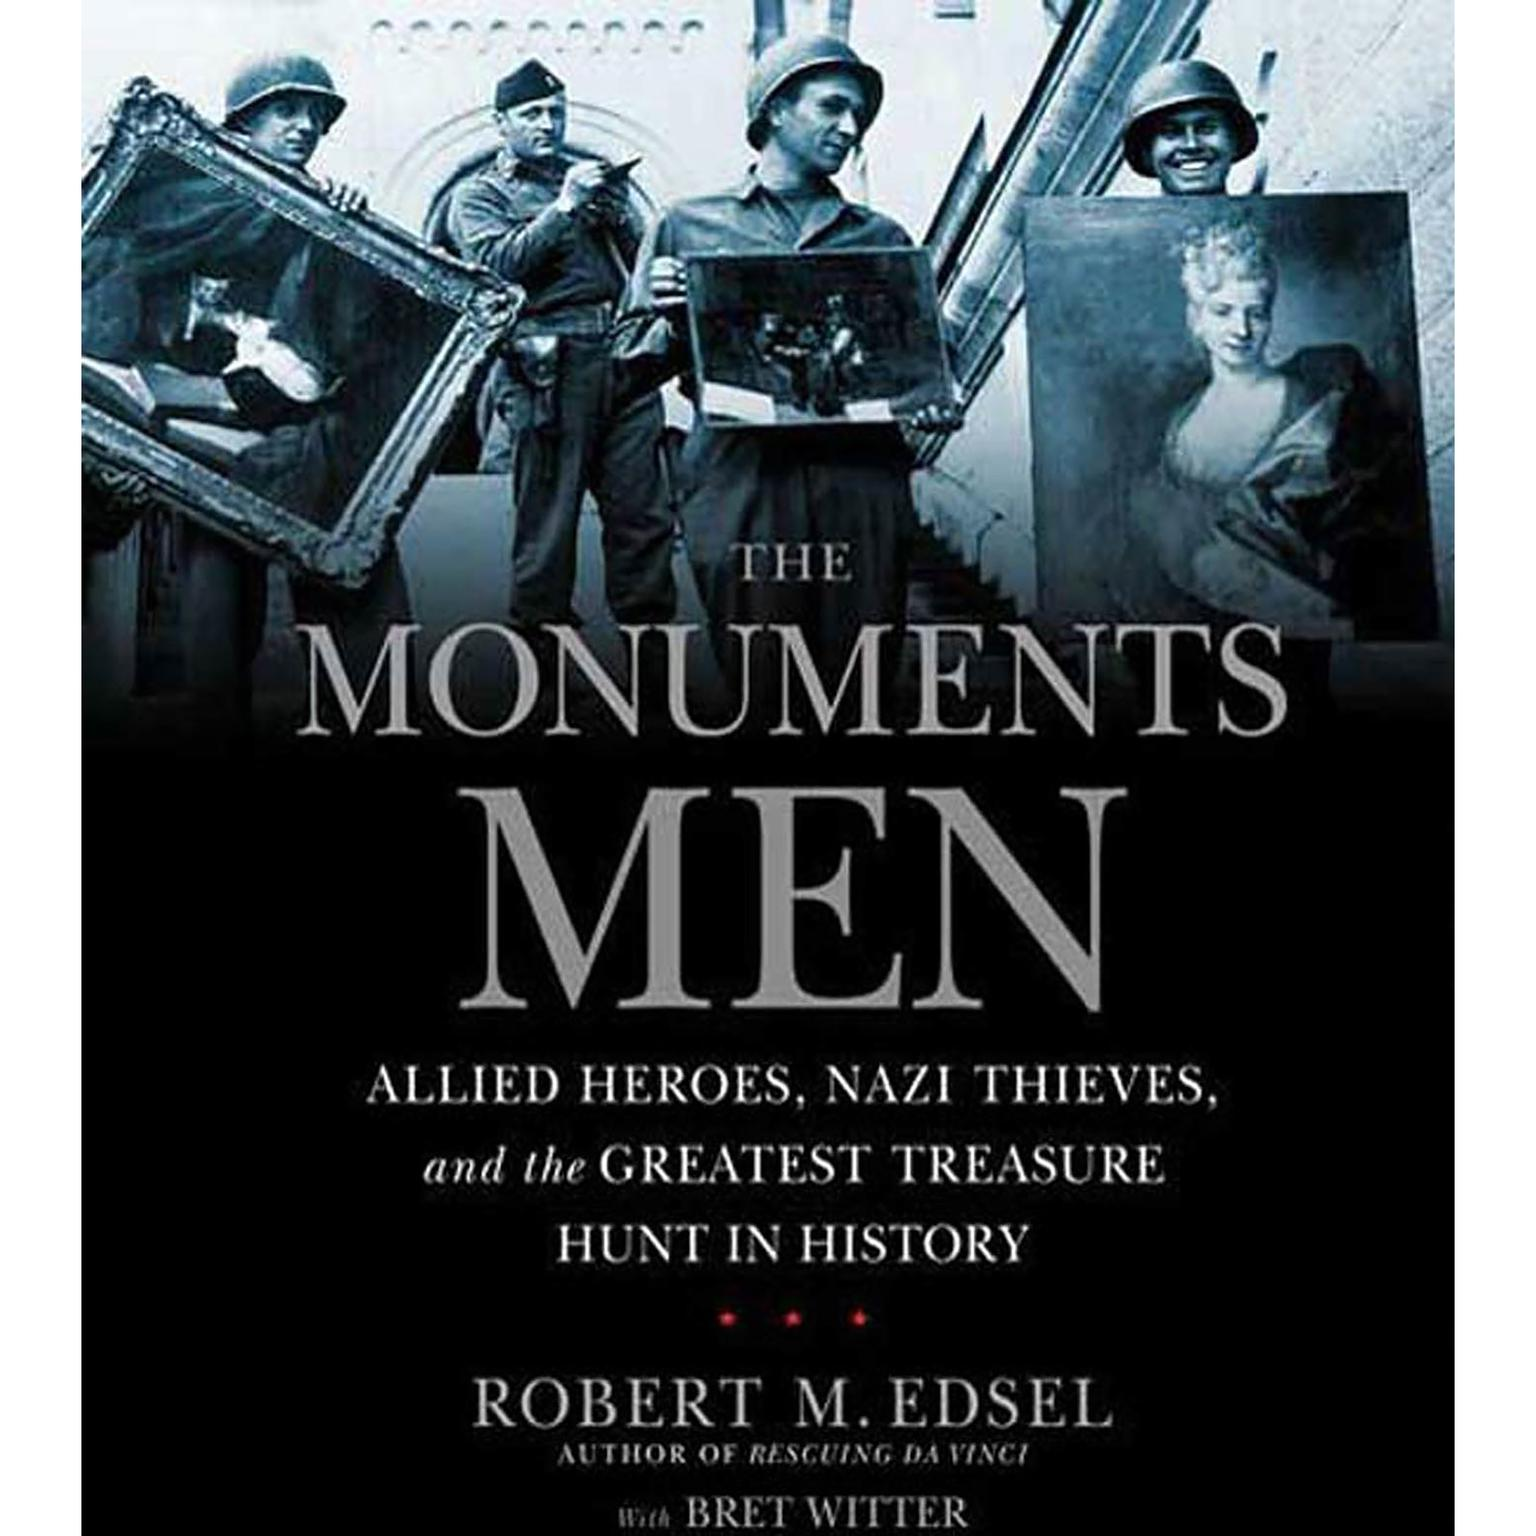 Printable The Monuments Men: Allied Heroes, Nazi Thieves, and the Greatest Treasure Hunt in History Audiobook Cover Art